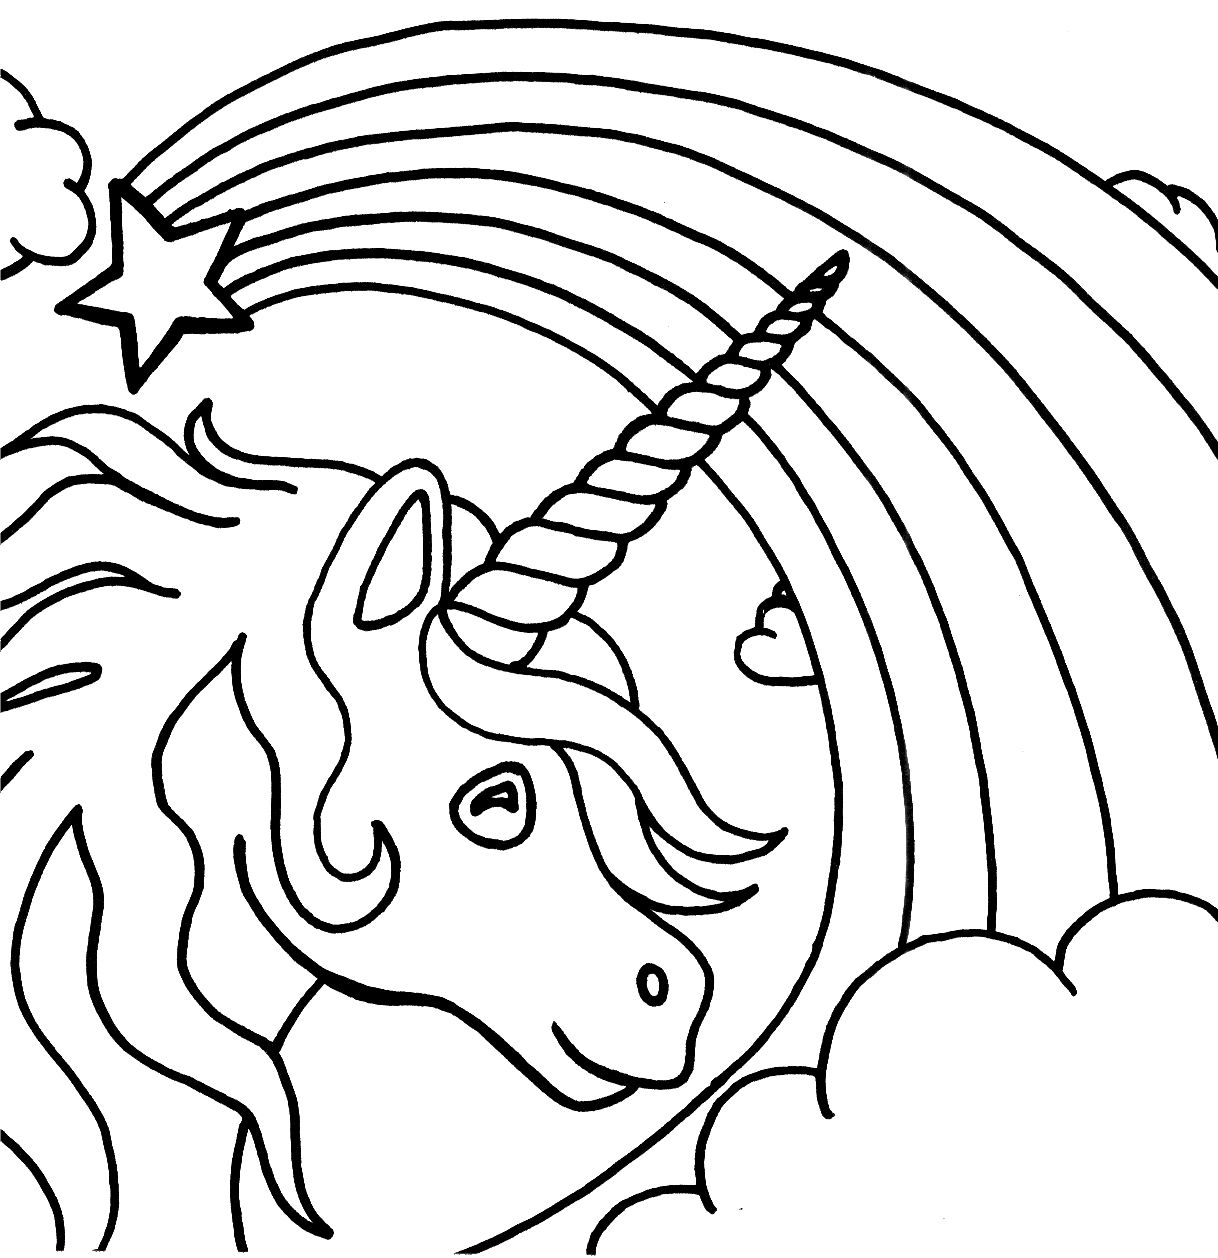 Kids Printable Coloring Pages Free